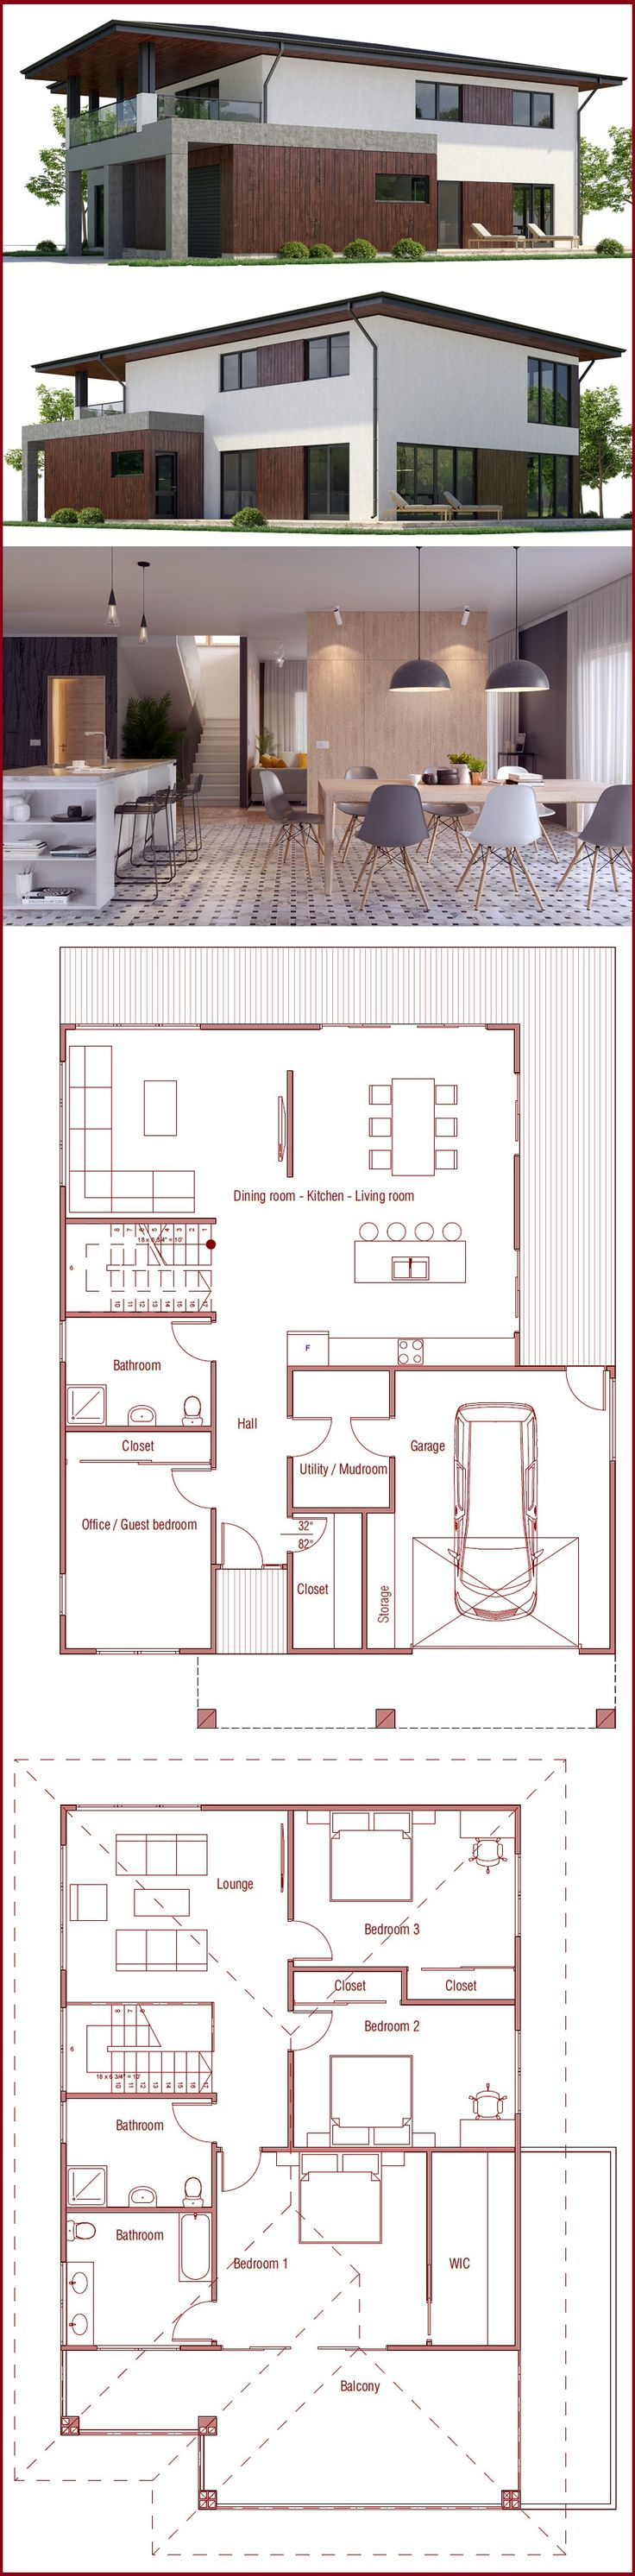 Re configure this. Add master & bath on other side of garage, door from garage to kitchen. And 1/2 bath in utility. Remove 2nd floor. House Plan